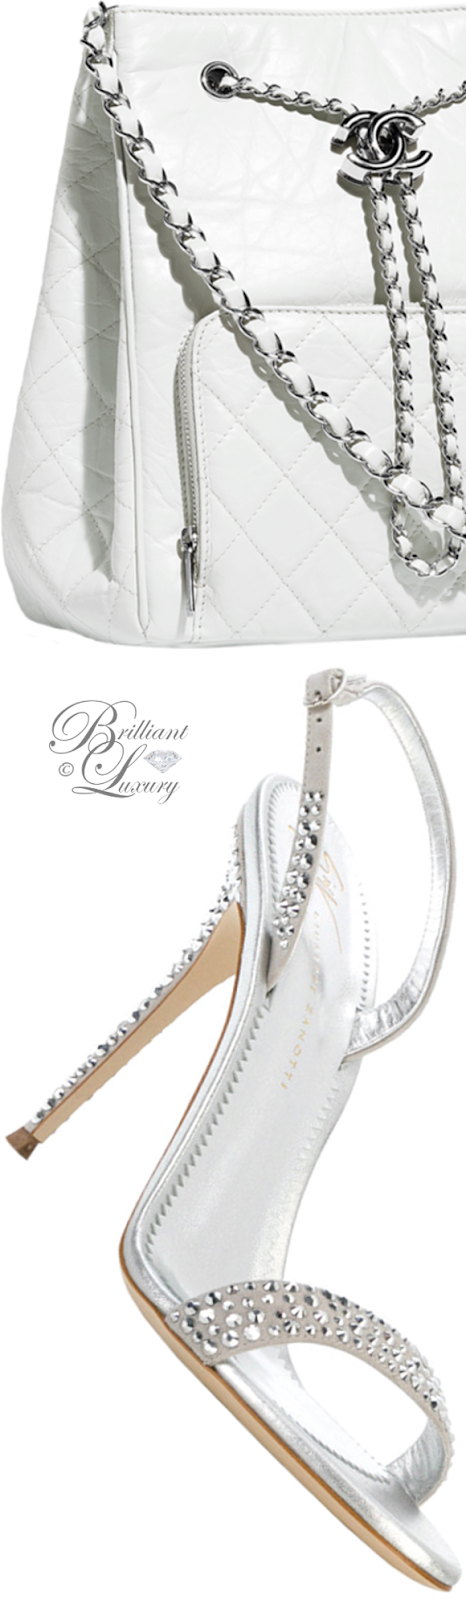 Brilliant Luxury ♦ Chanel white drawstring bag and Giuseppe Zanotti embellished slingback sandals